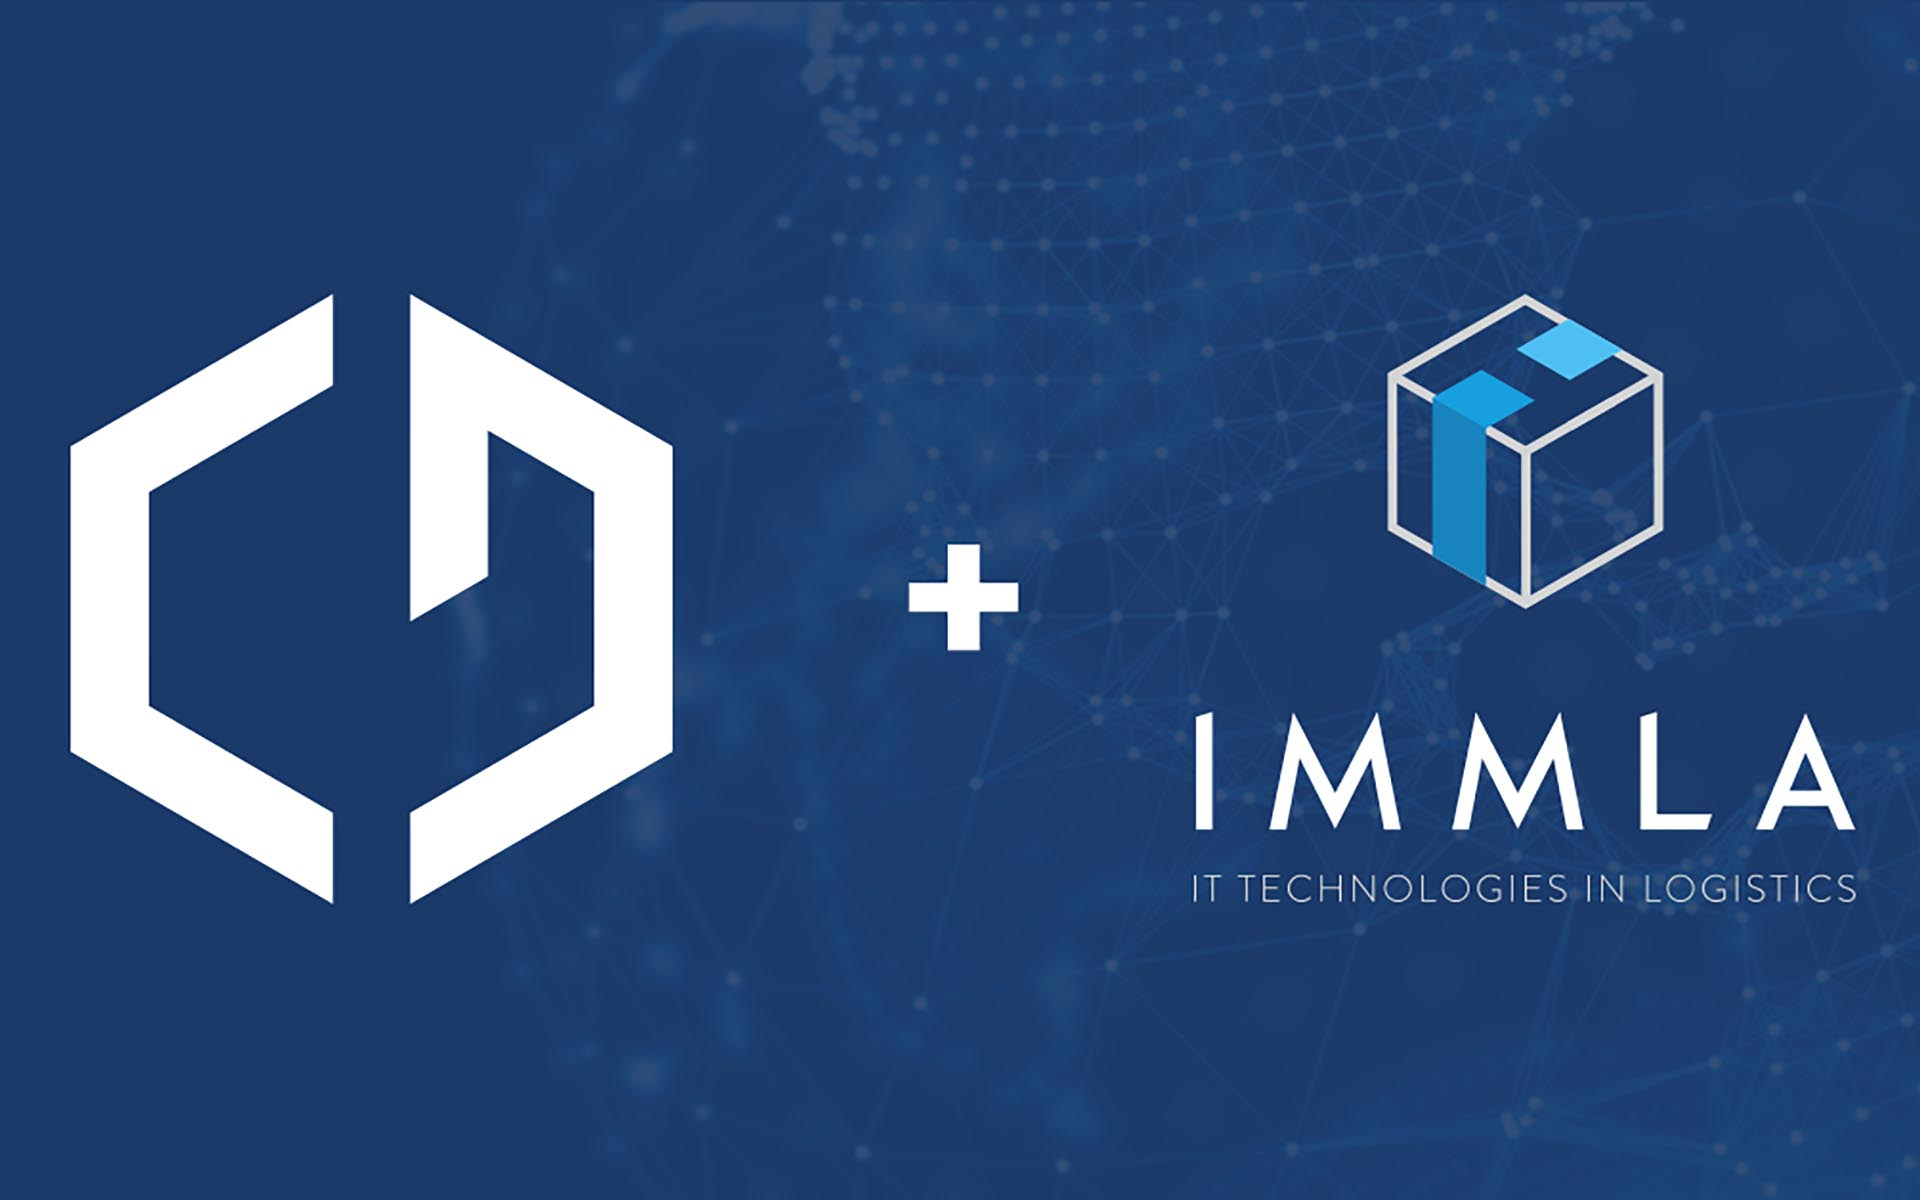 Confideal Announces Cooperation with IMMLA